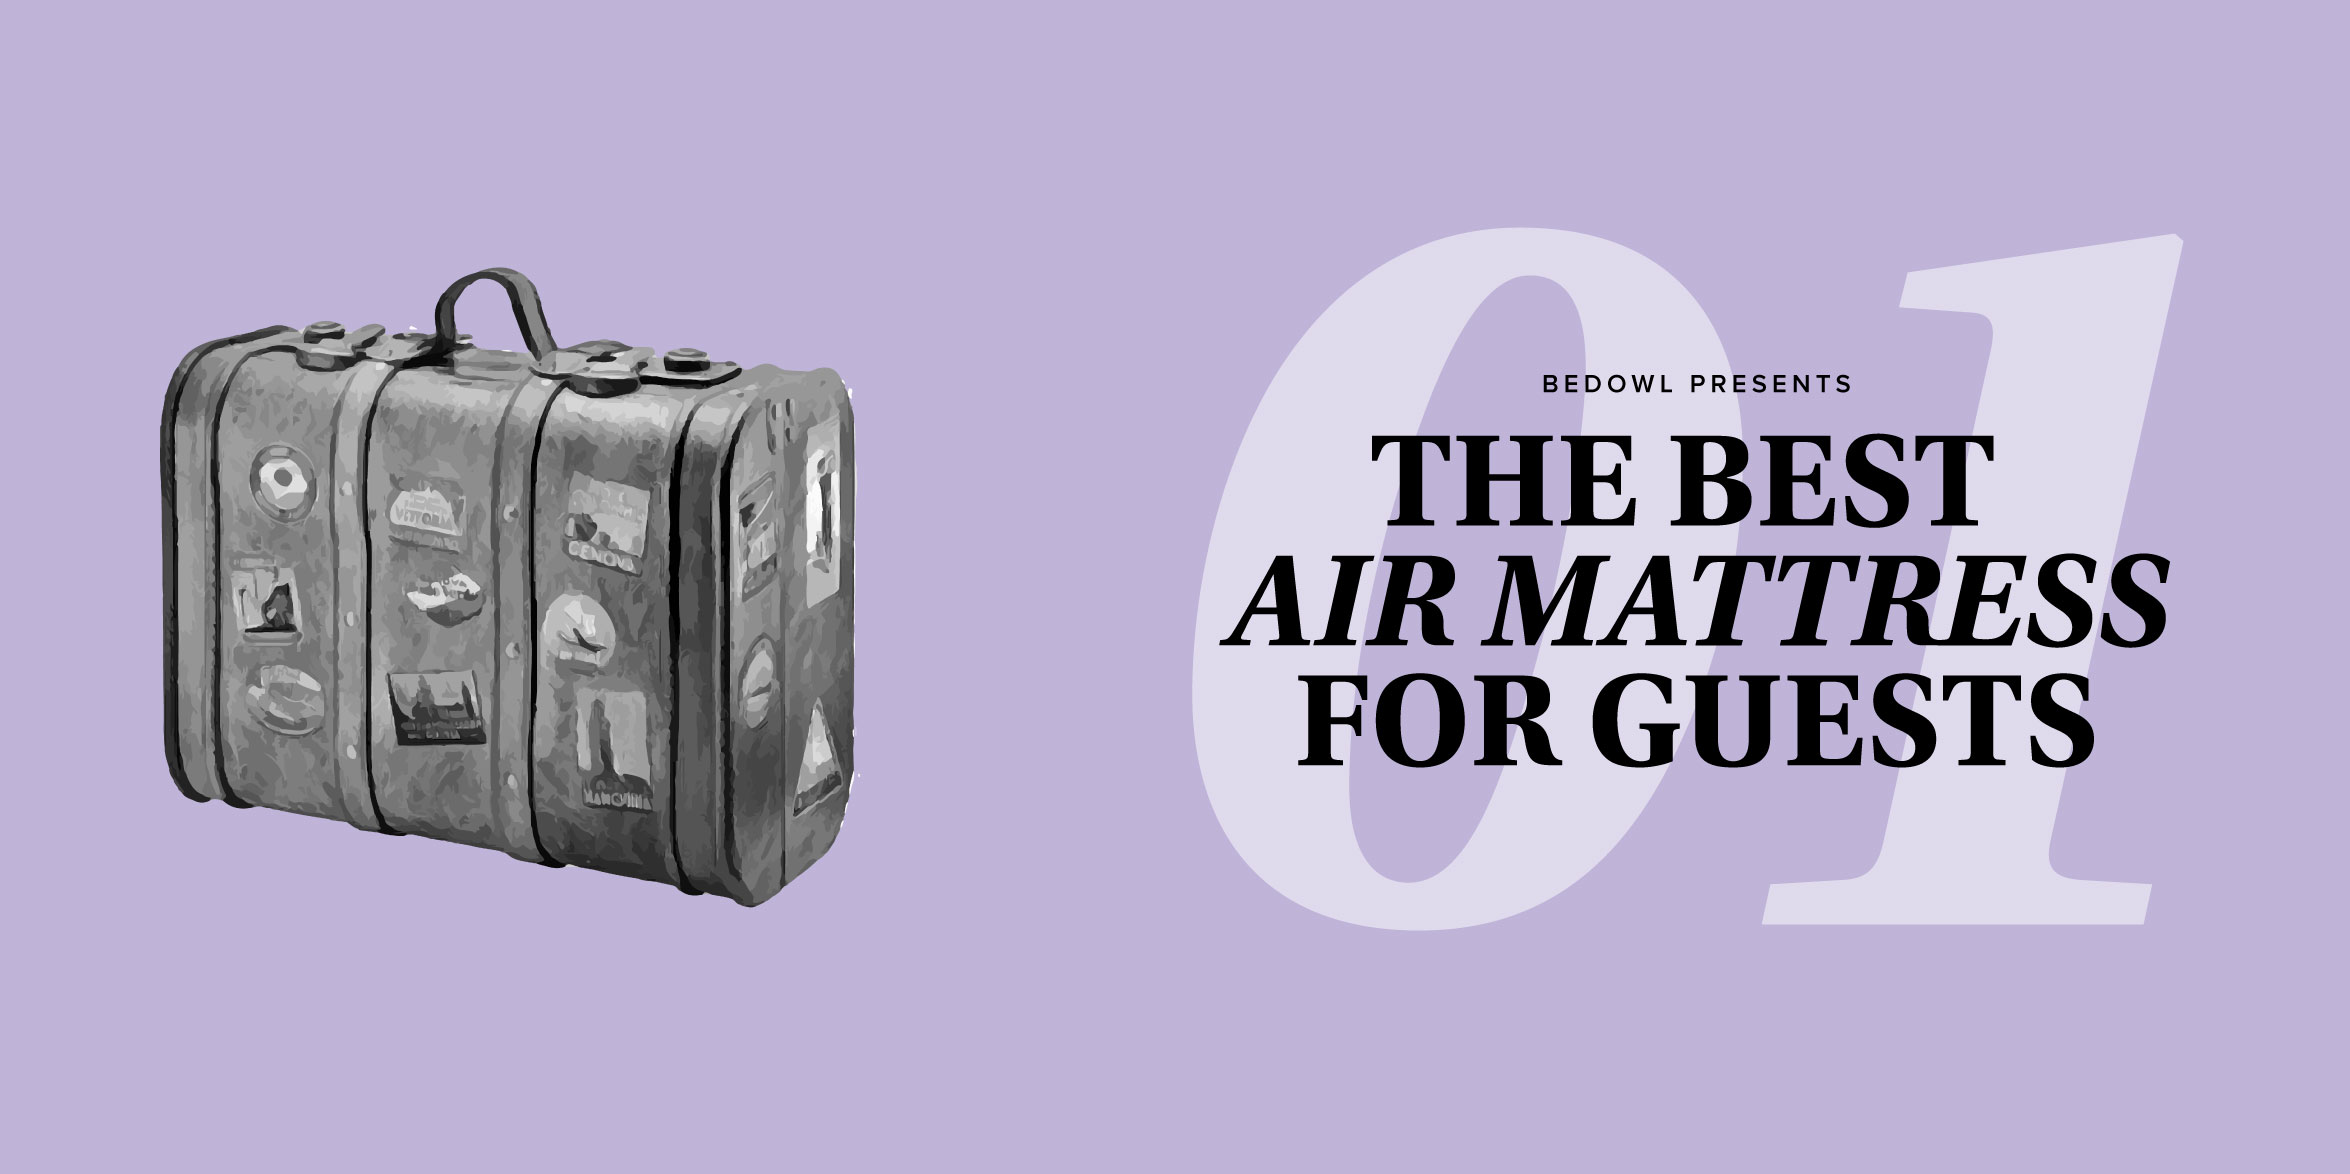 The Best Air Mattresses for Guests by Bedowl